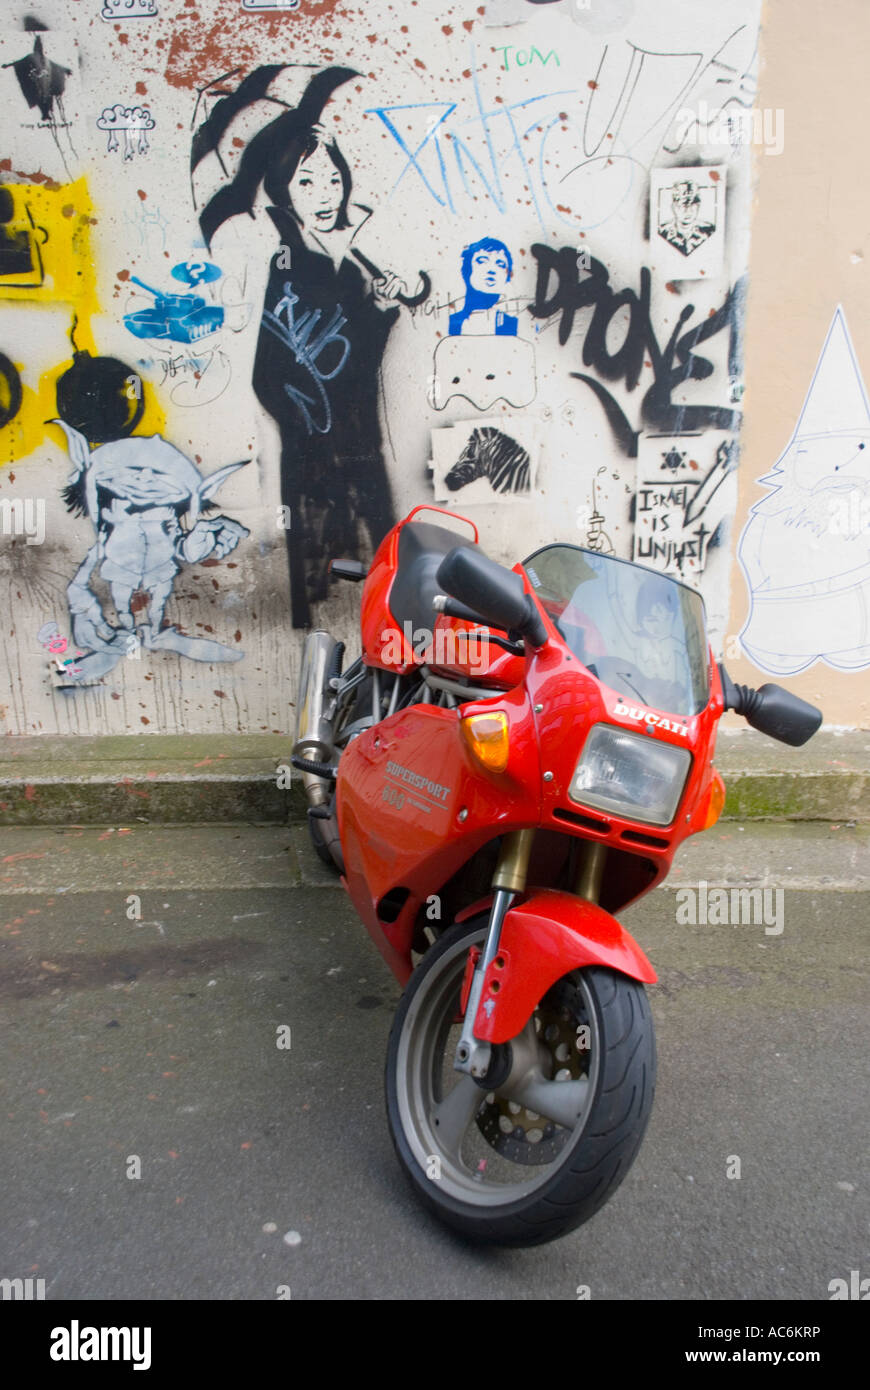 Red Ducati Supersport 600 and wall art graffiti - Stock Image